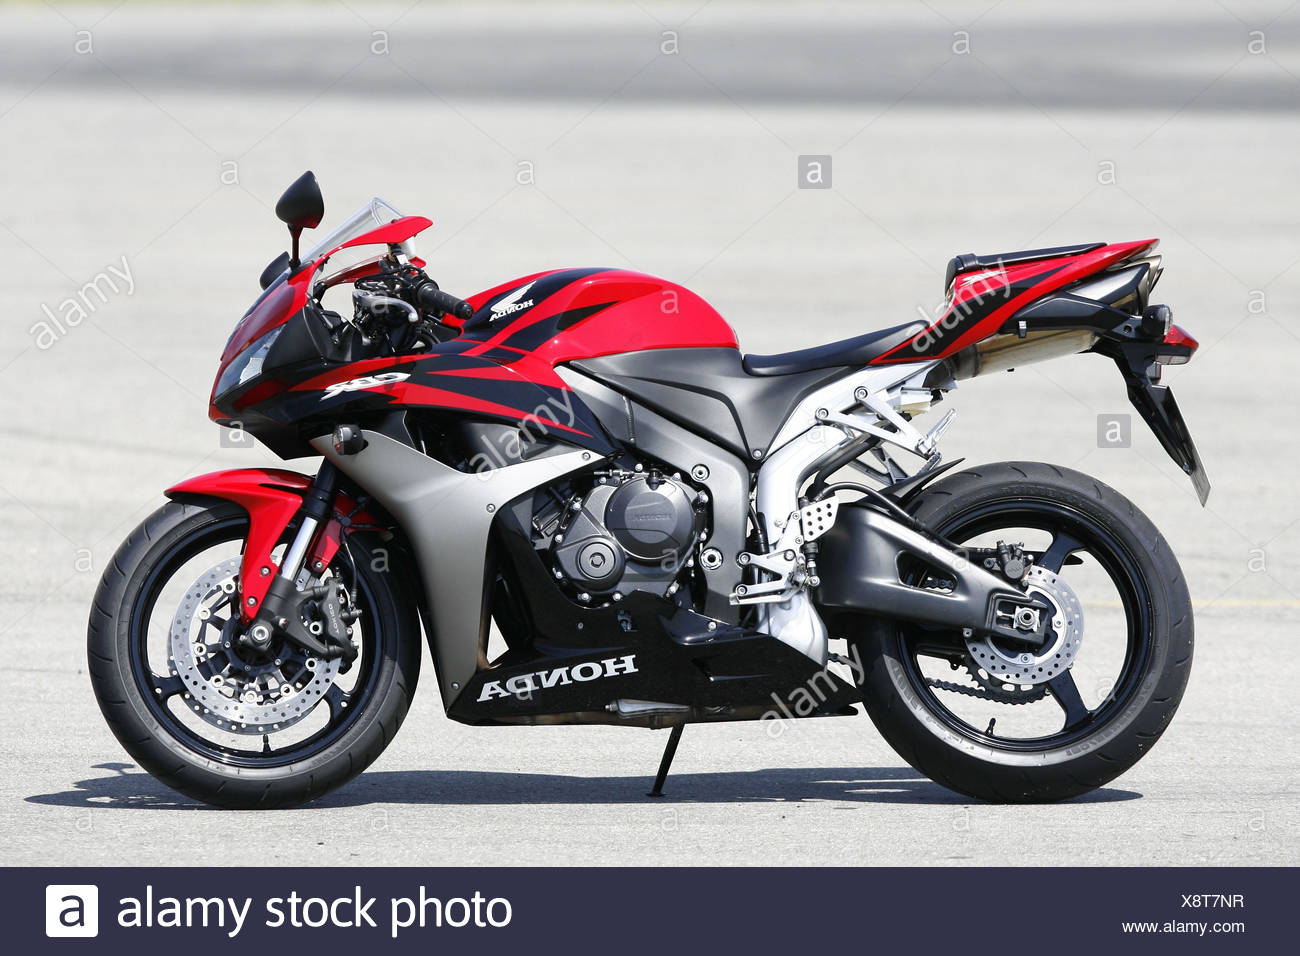 Red Honda Motorcycle Stock Photos 50cc Sport Bike Cbr Standard On The Right Image